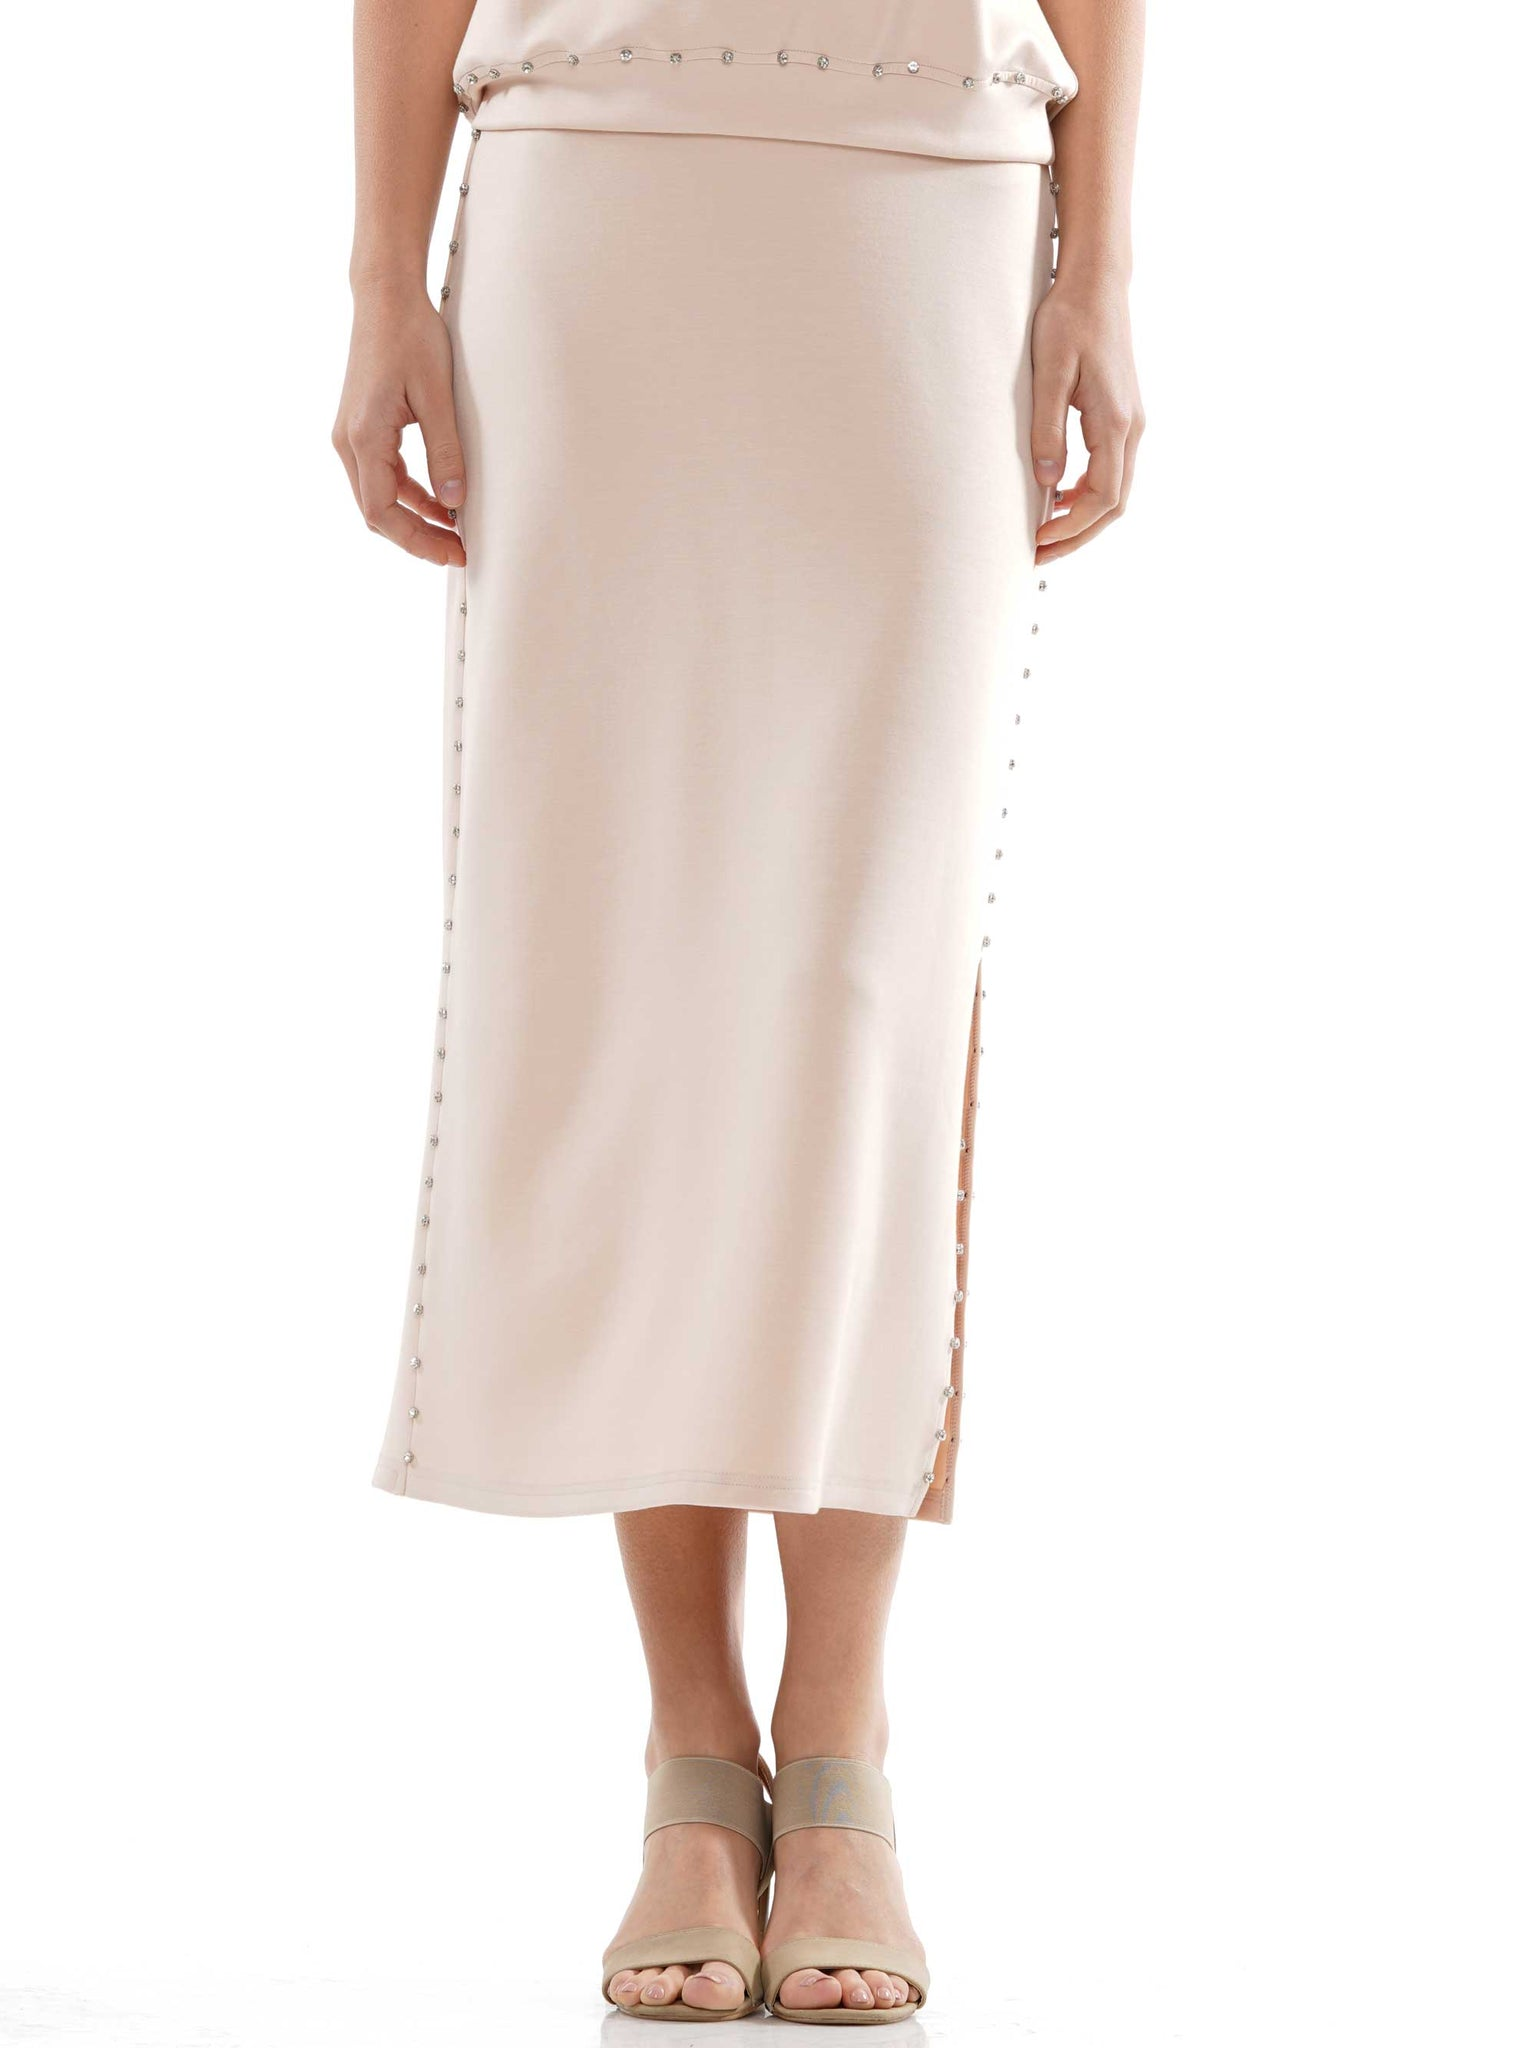 Light lyocell side slit skirt with gemstone